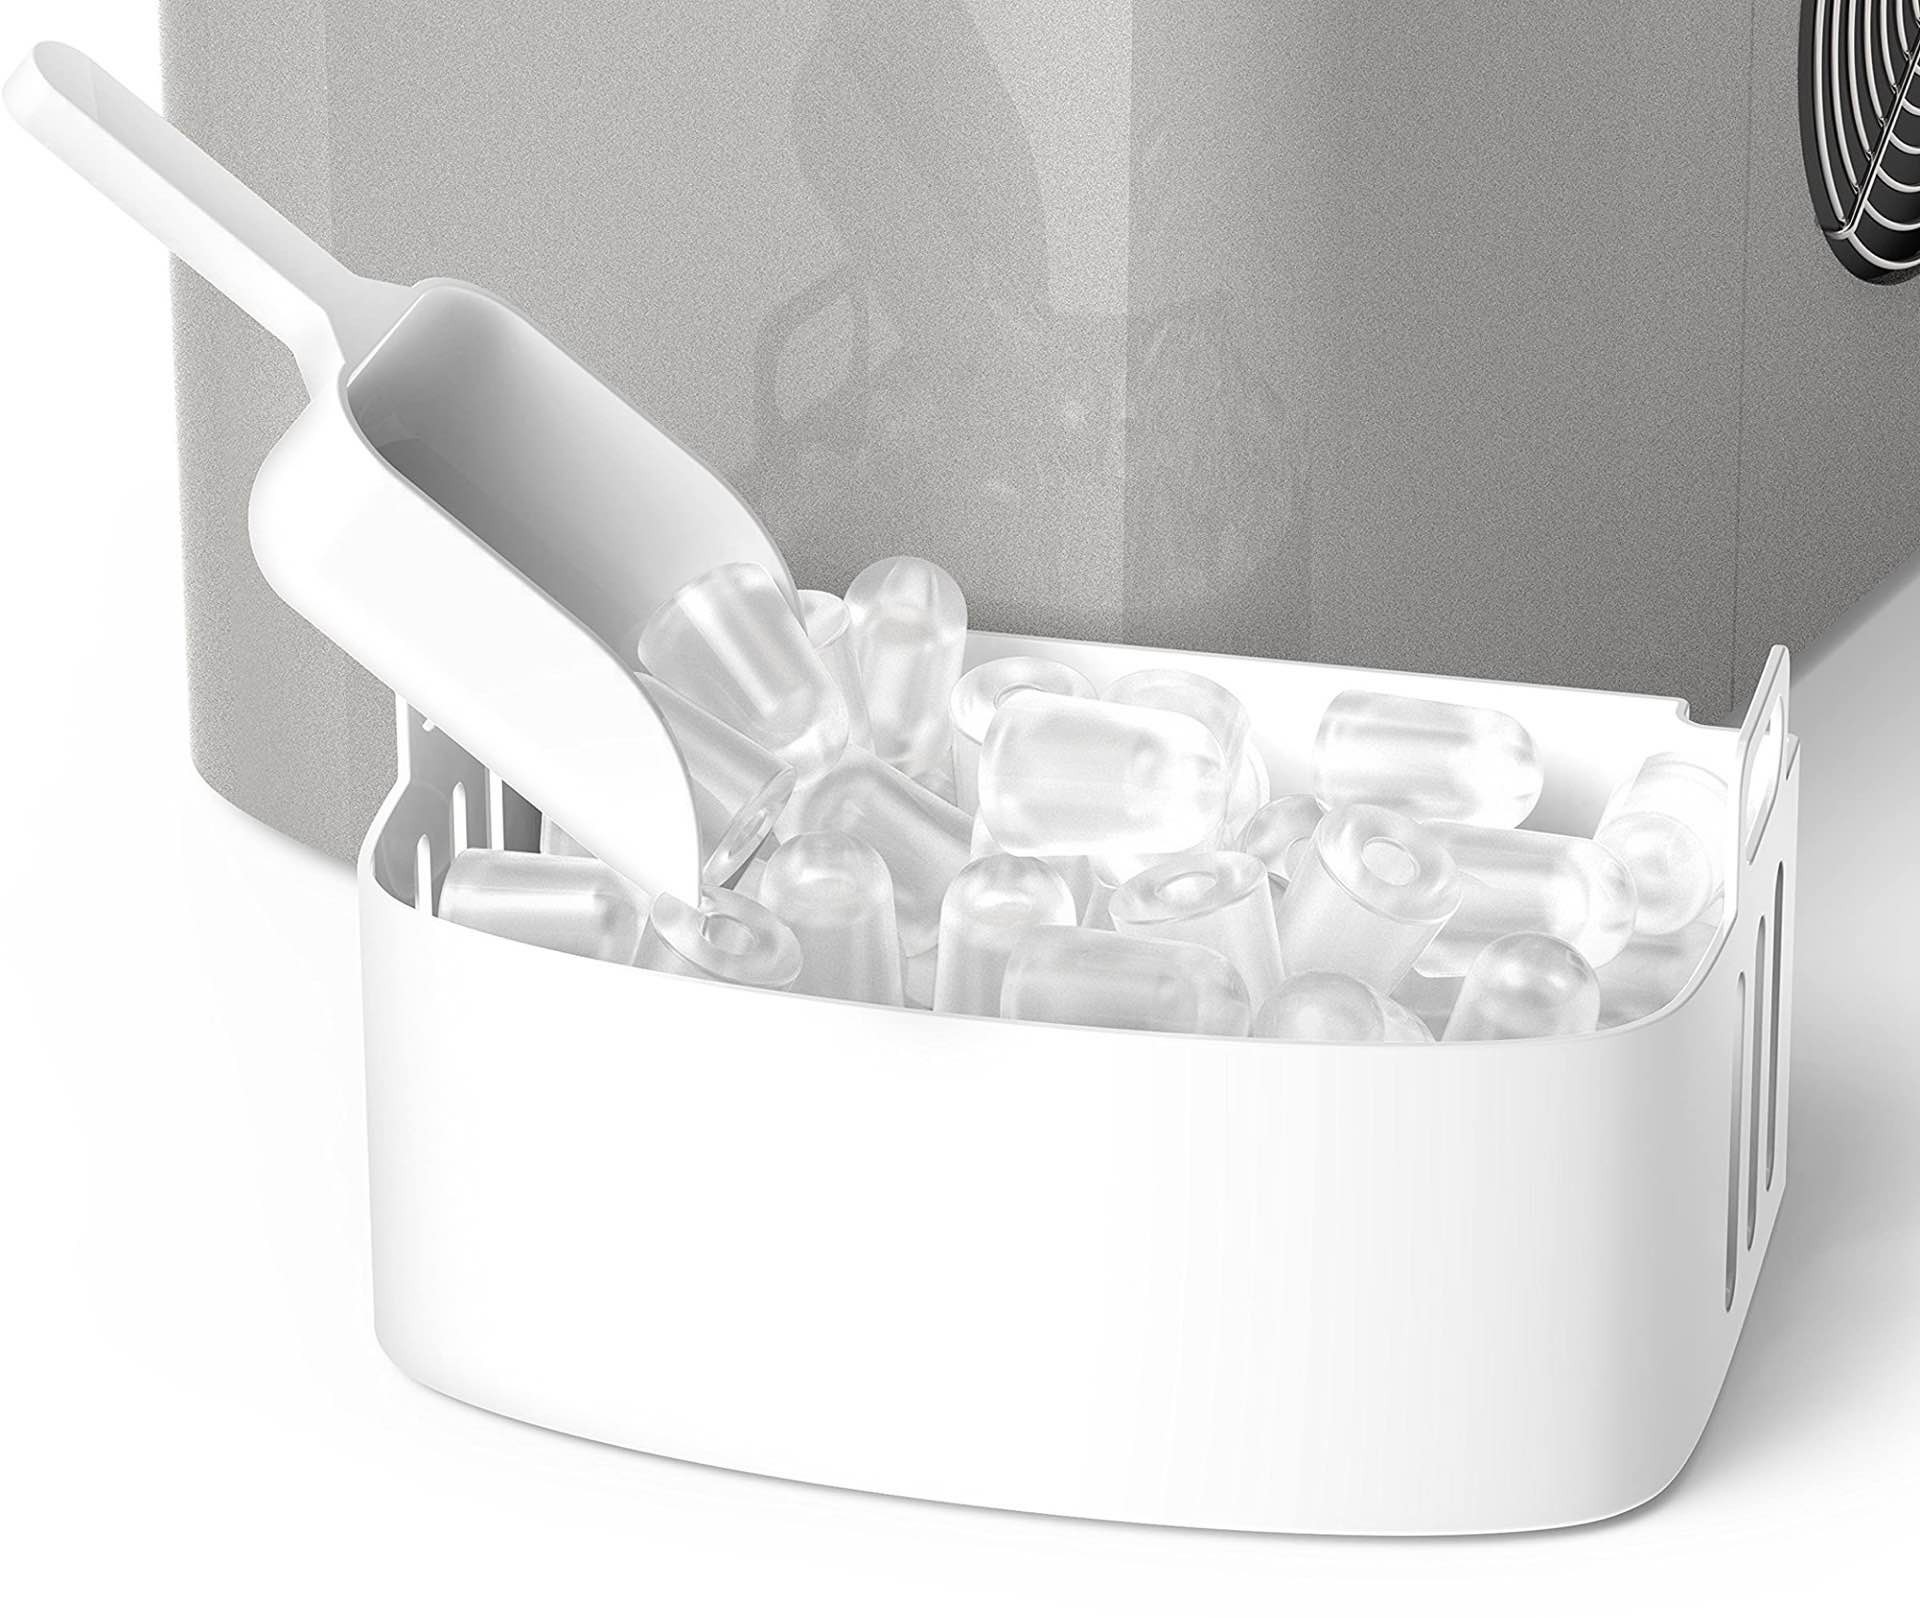 homelabs-chill-pill-countertop-ice-maker-removable-bucket